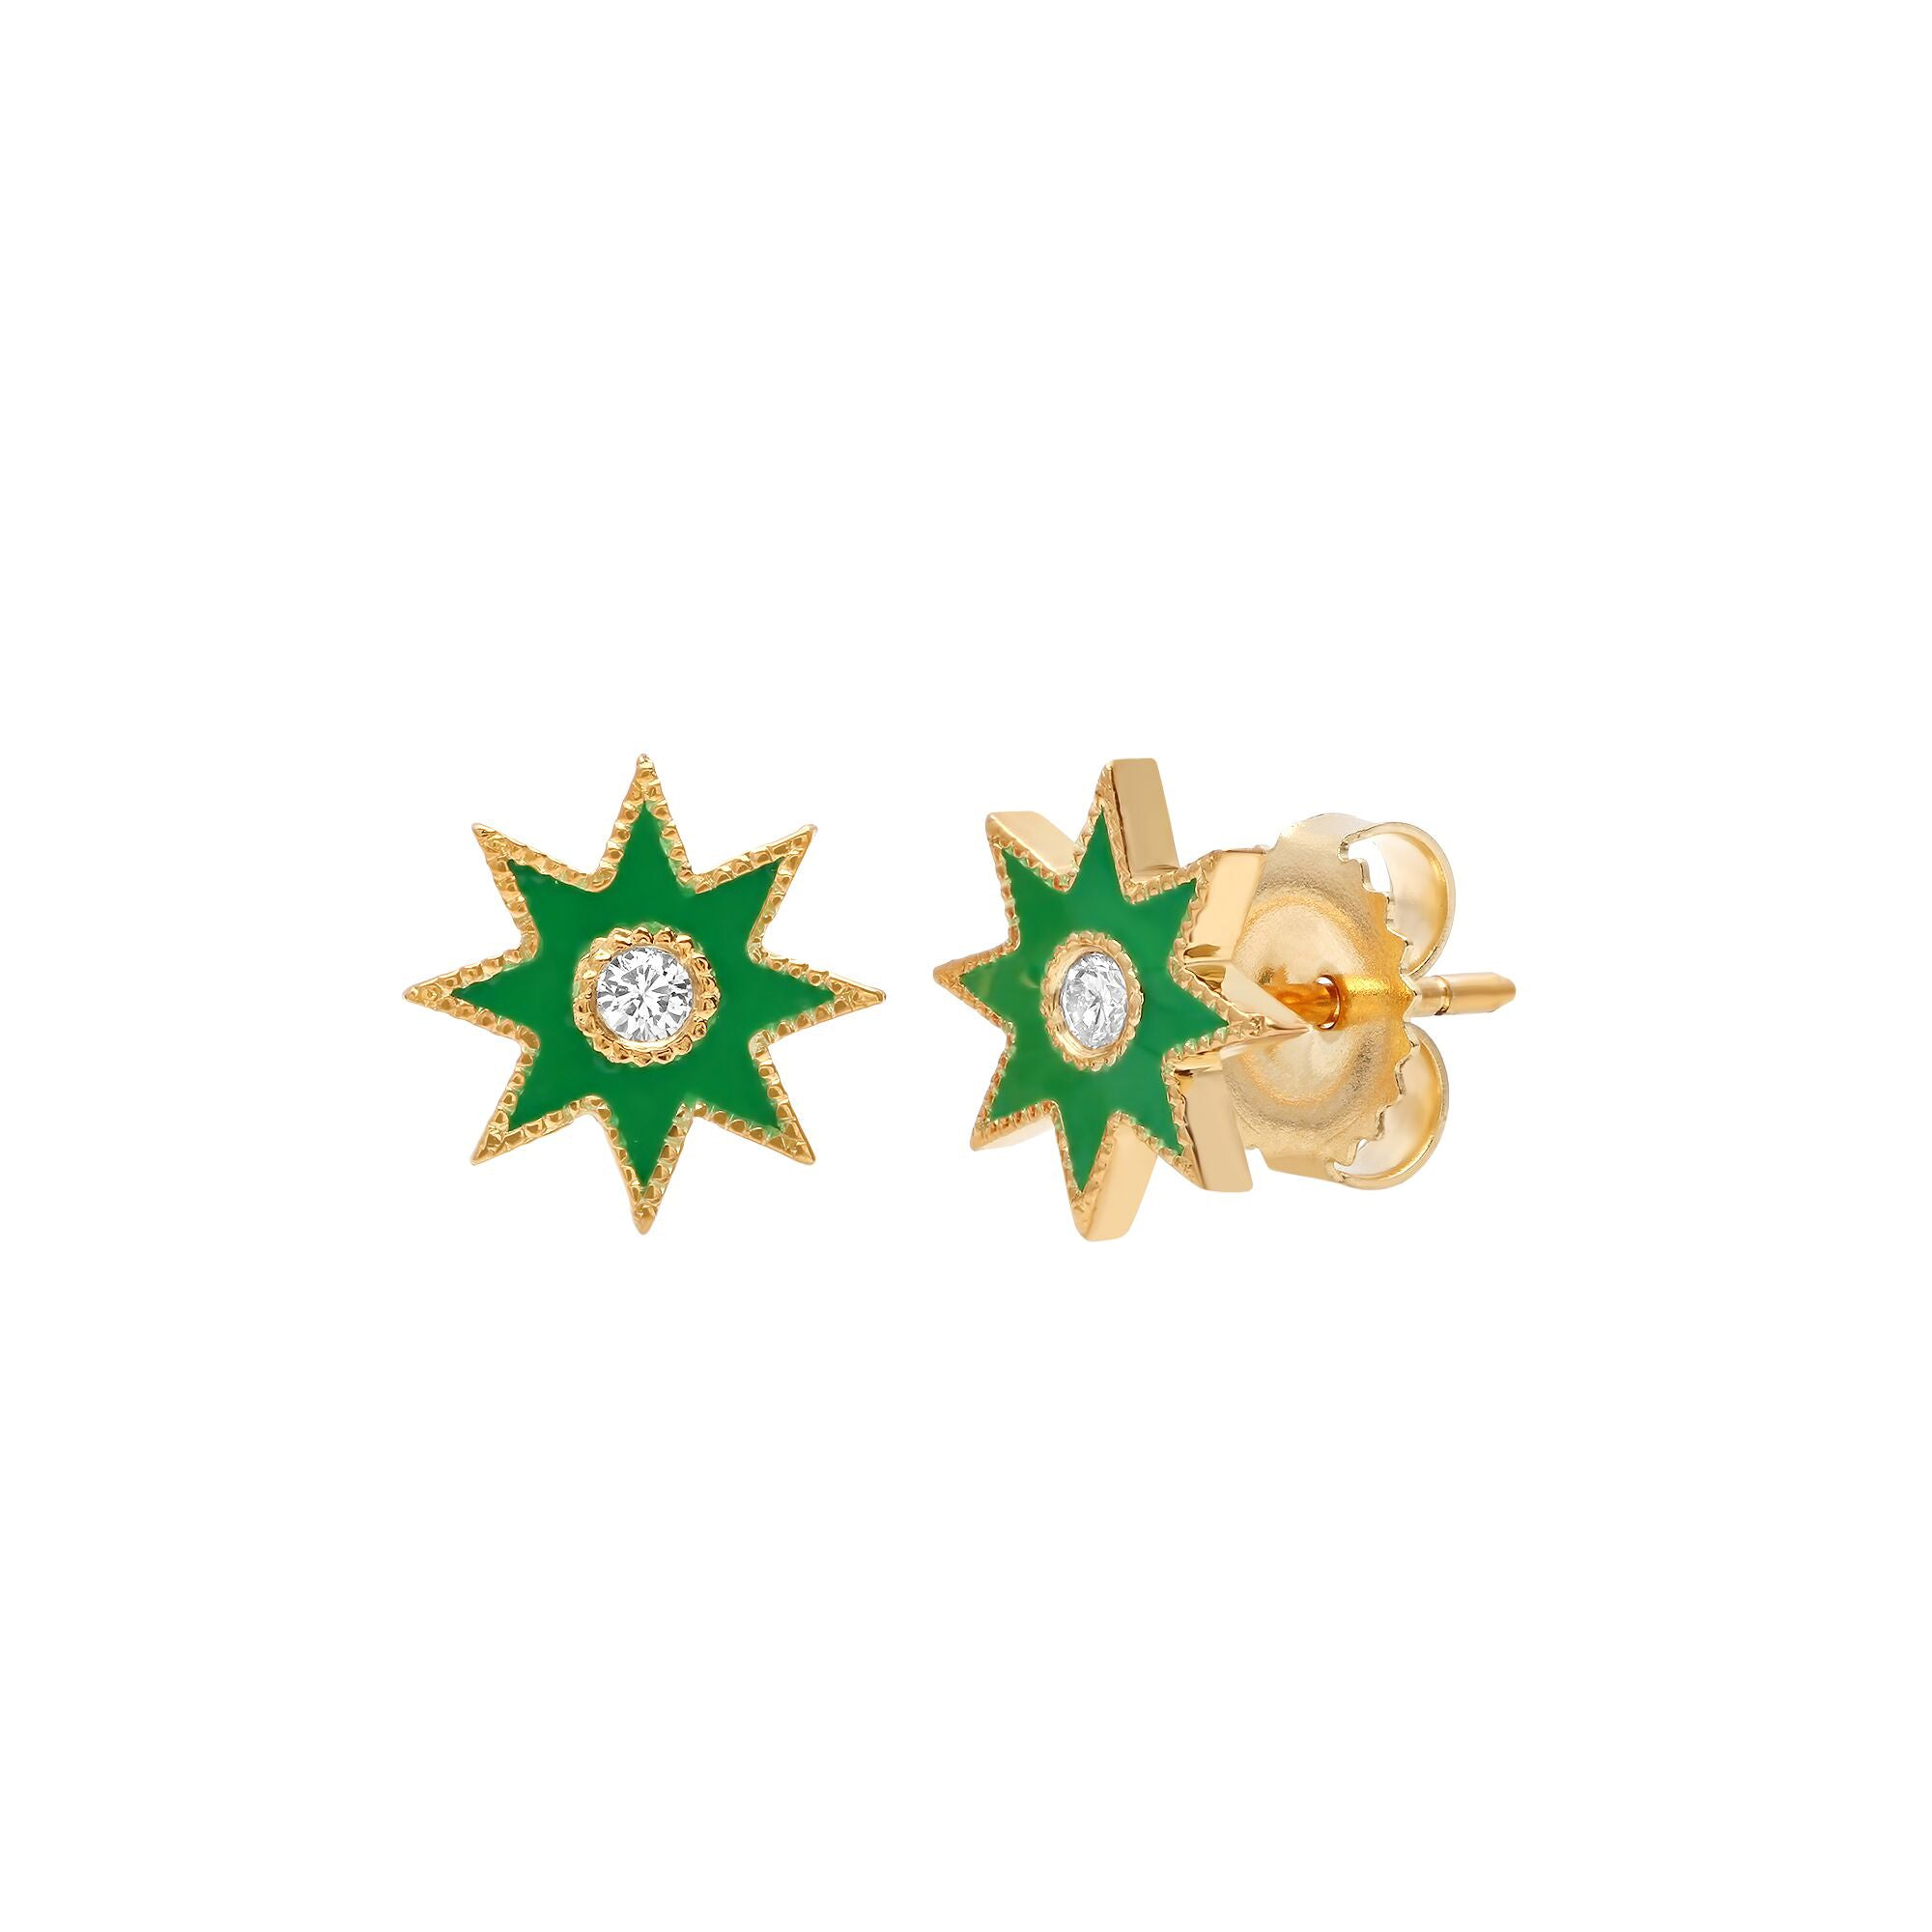 Green Star Studs by Colette for Broken English Jewelry